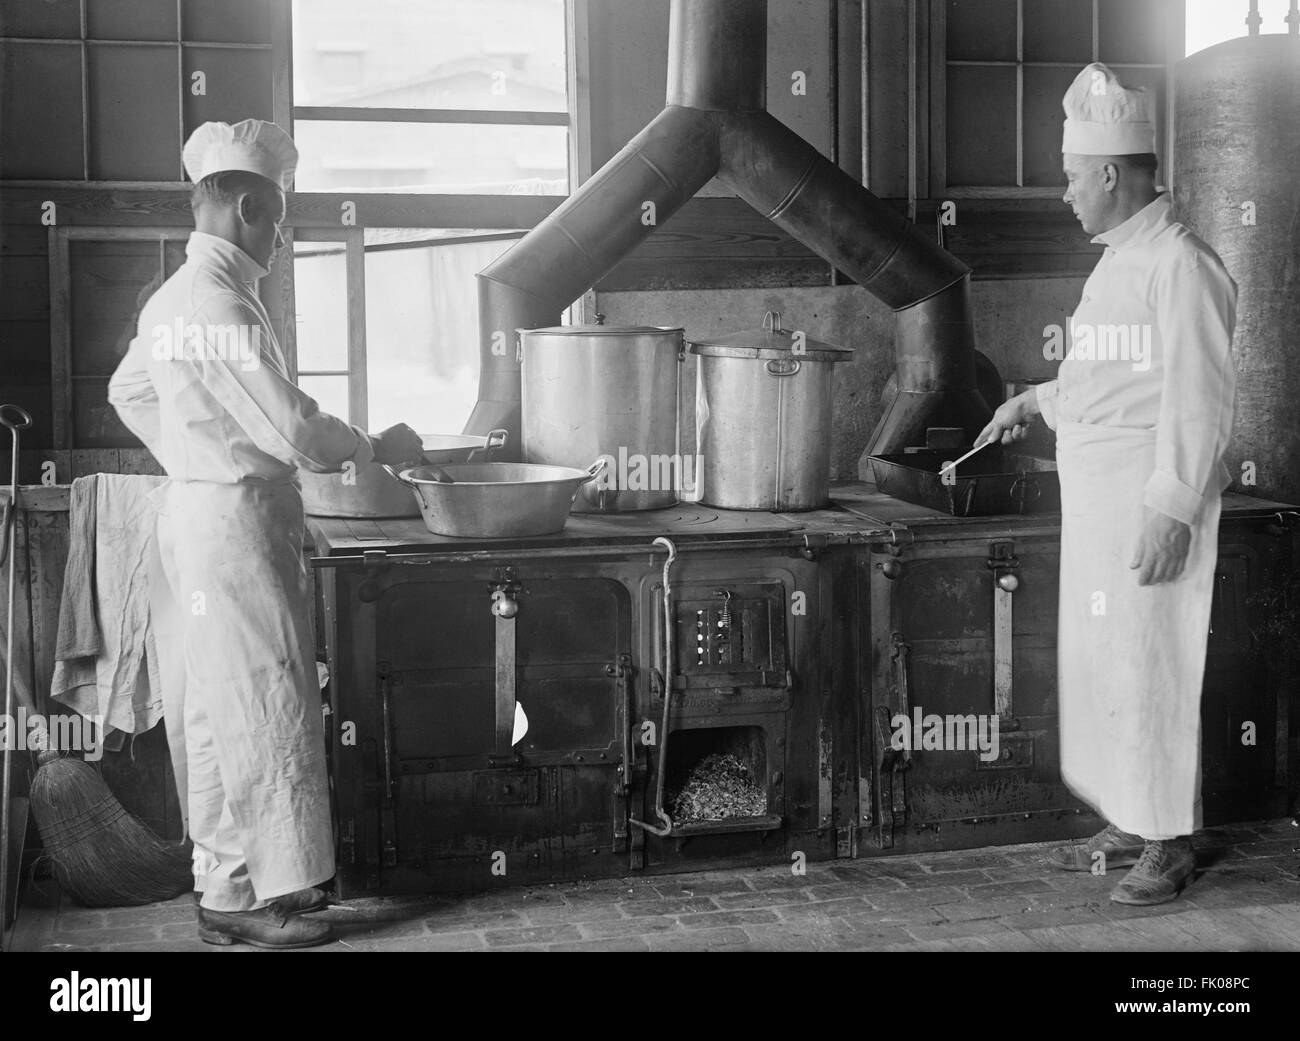 Two Cooks in Kitchen, Fort Meade, Maryland, USA, circa 1917 Stock Photo